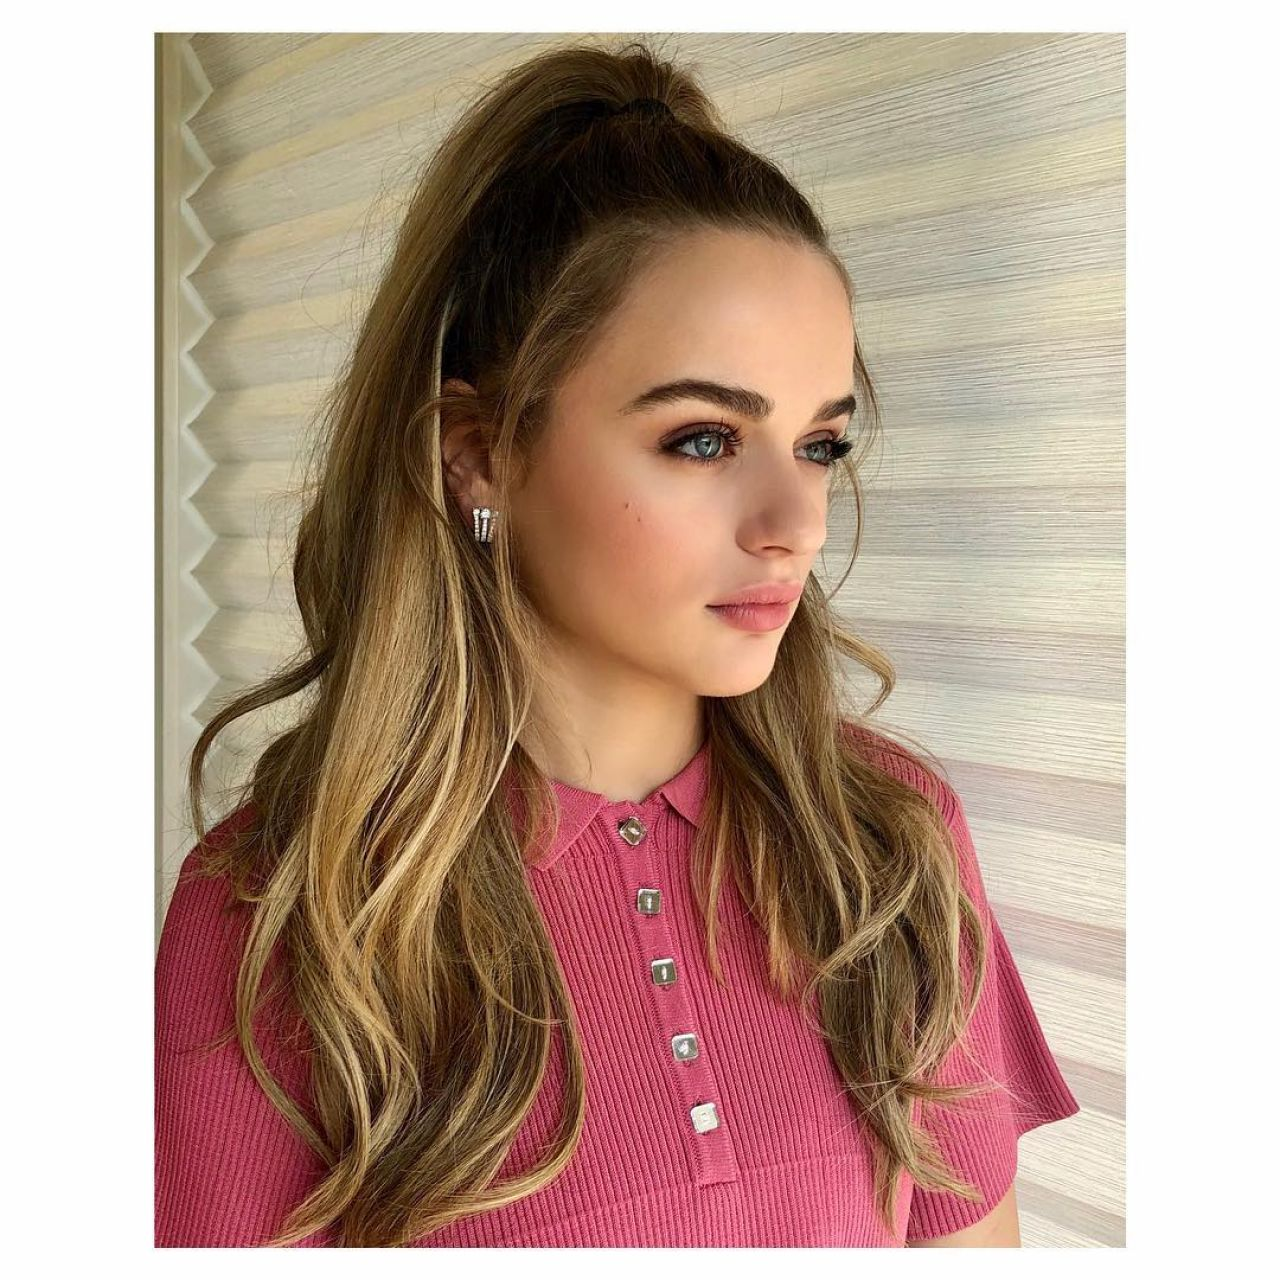 Watch Joey king personal pics video